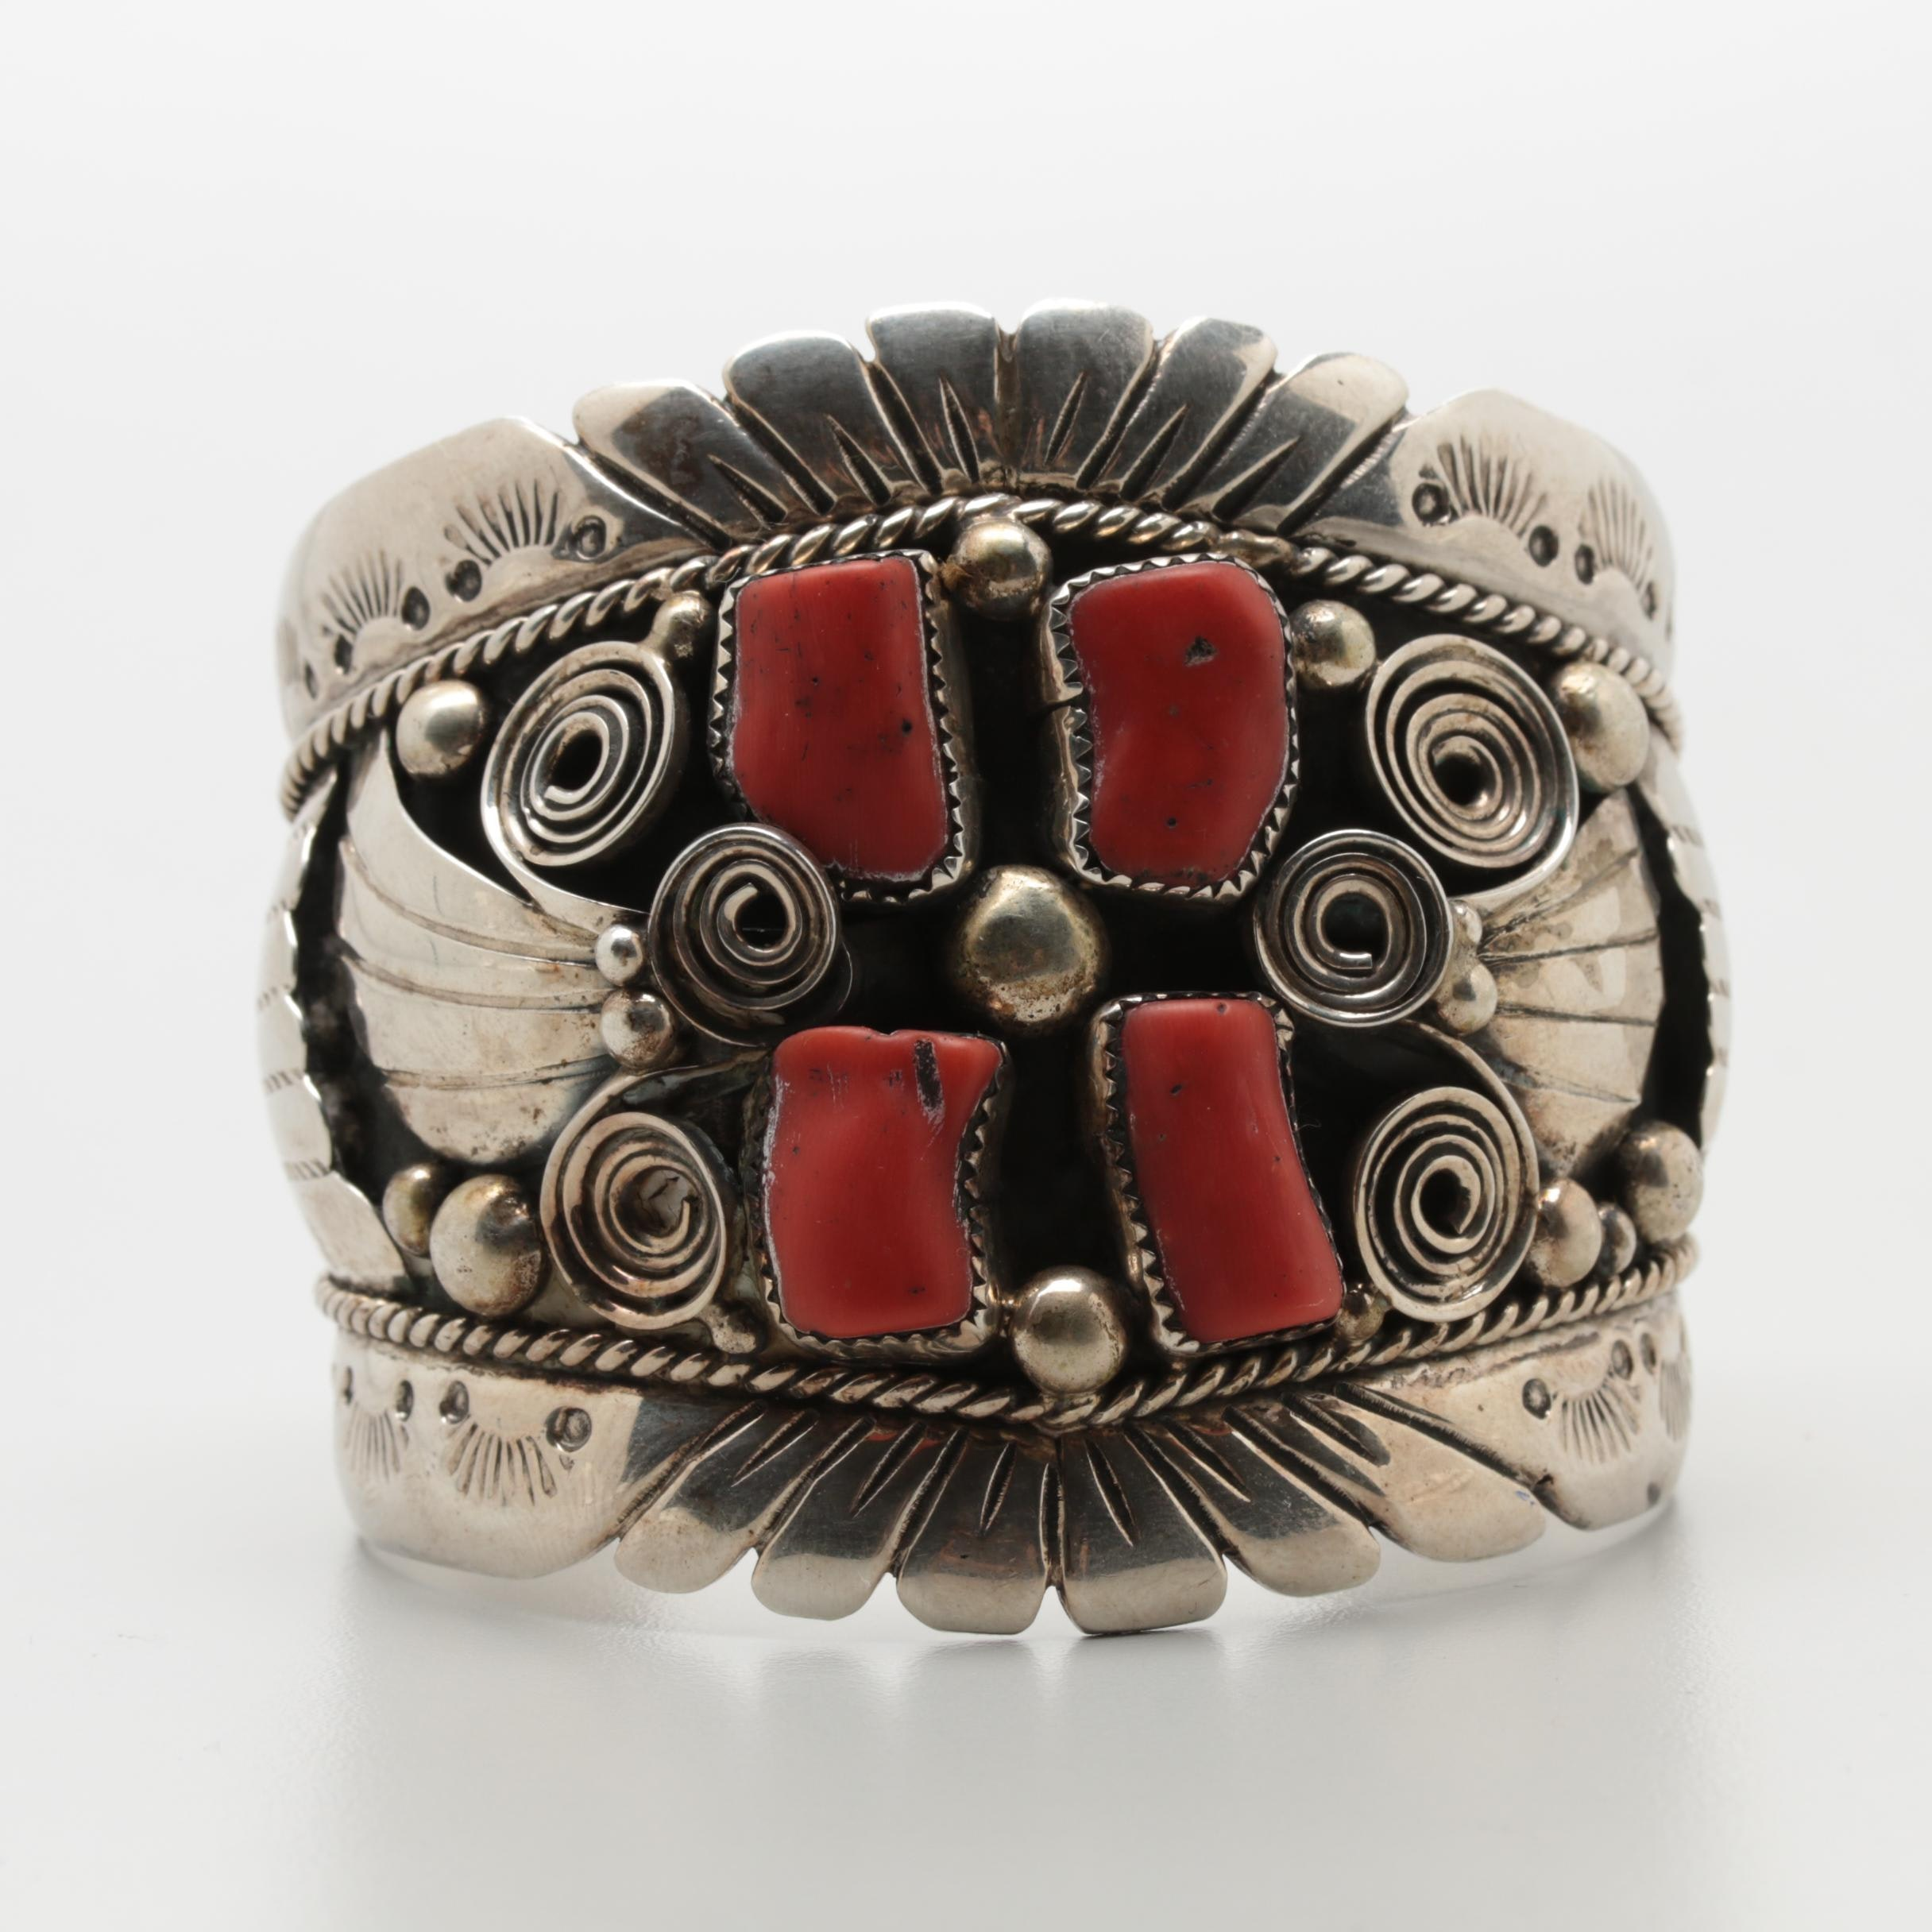 Southwestern Style Sterling Silver Coral and Applique Work Cuff Bracelet